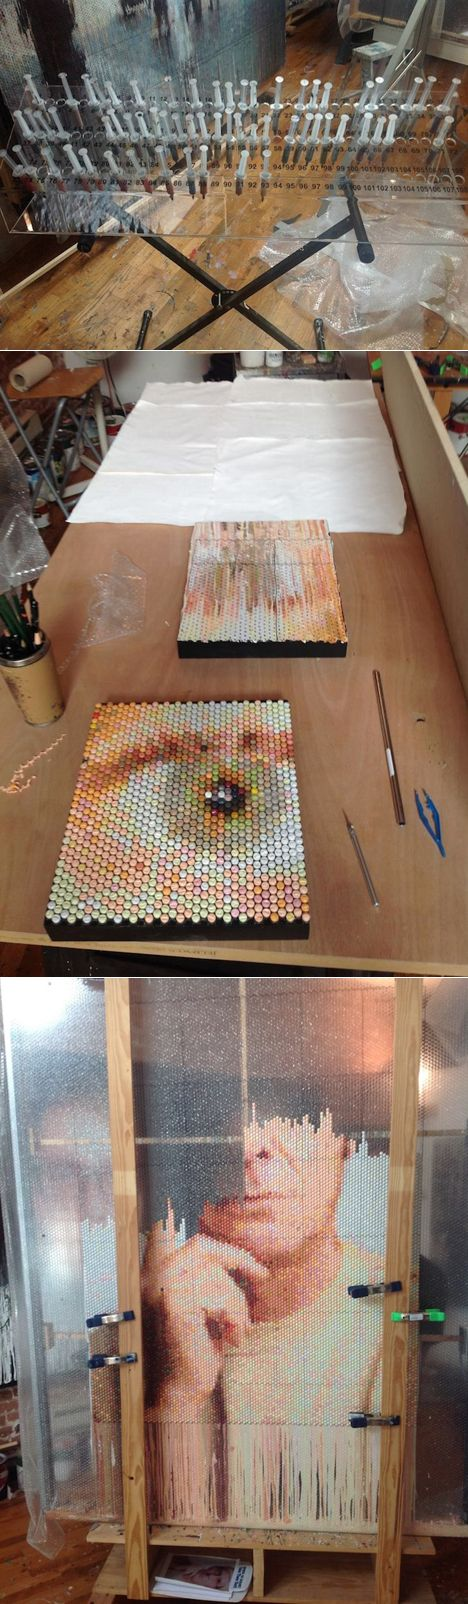 Bubble wrap injected with paint.